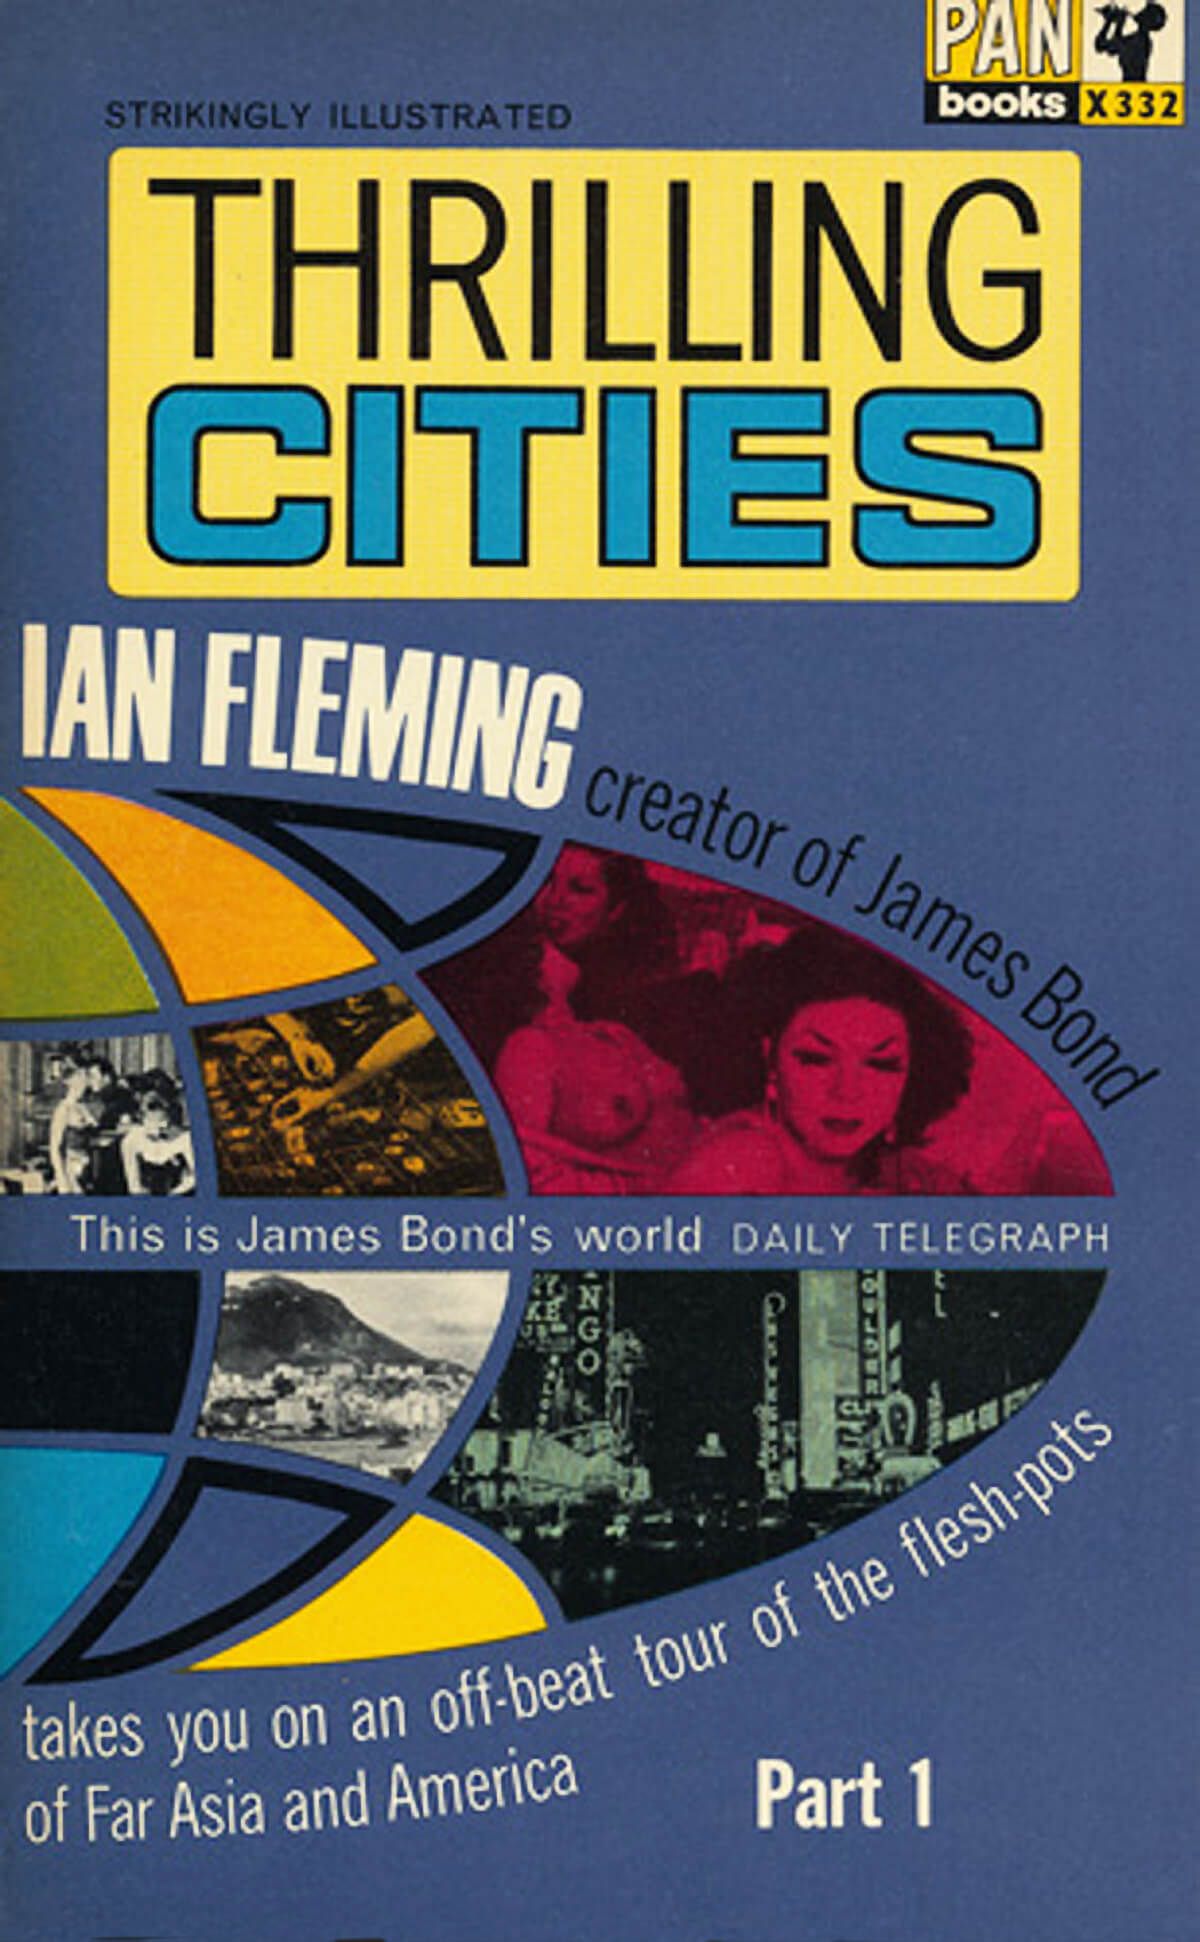 Thrilling Cities Part One by Ian Fleming